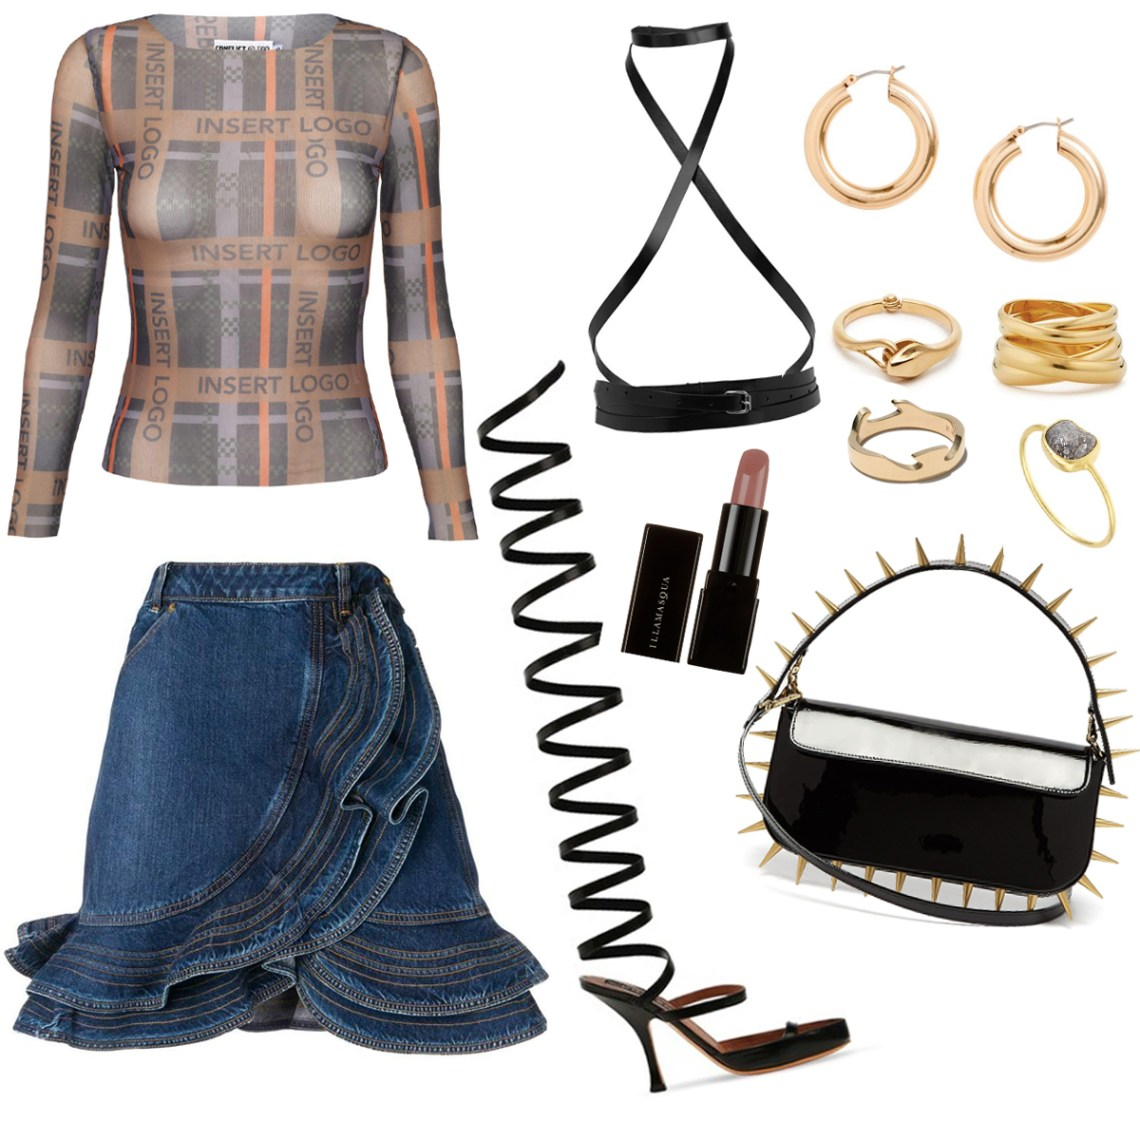 Outfit idea for the Becki Mesh Top. Team with killer heels, a harness and that all important ruffle denim skirt.